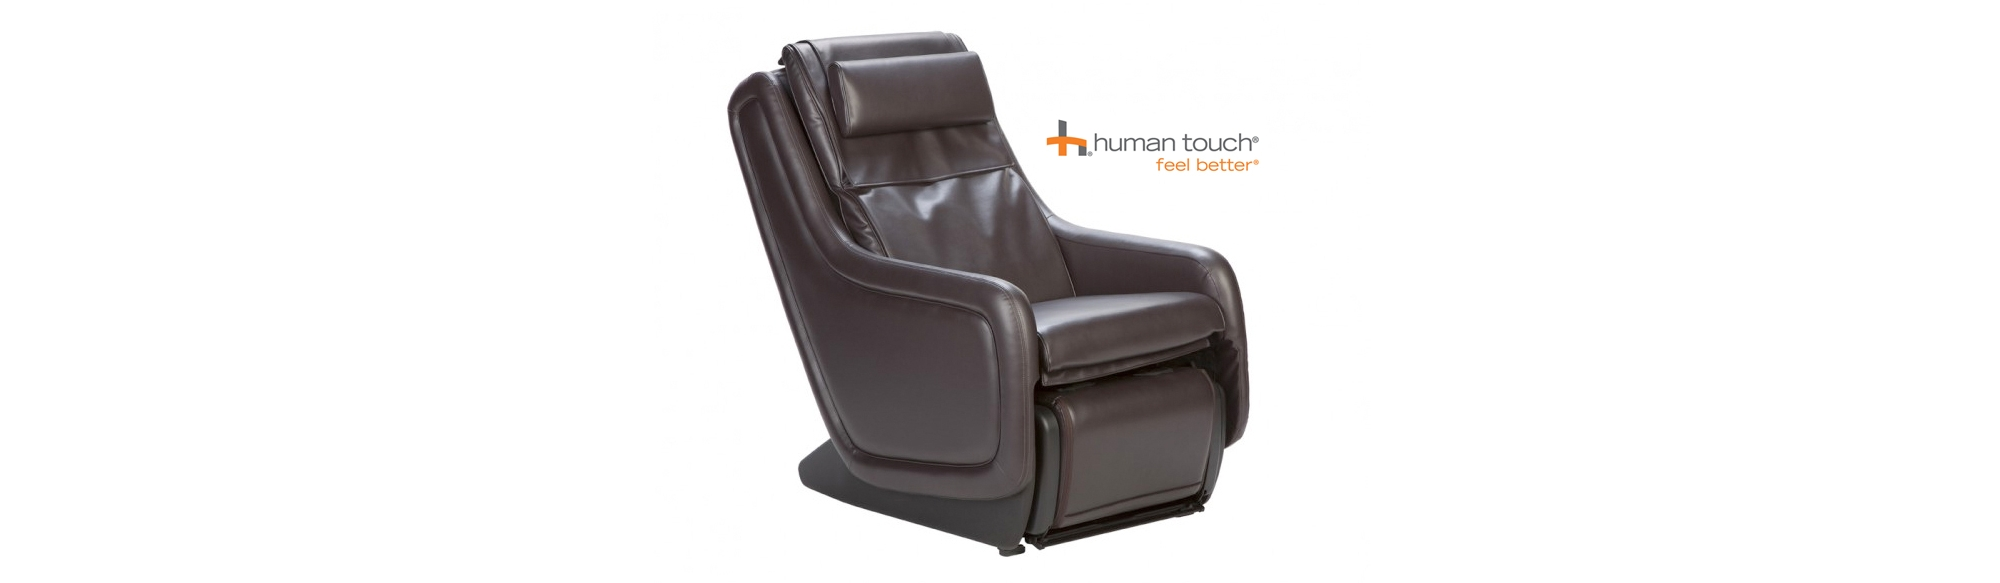 Human Touch ZG40 Massage Chair Recliner